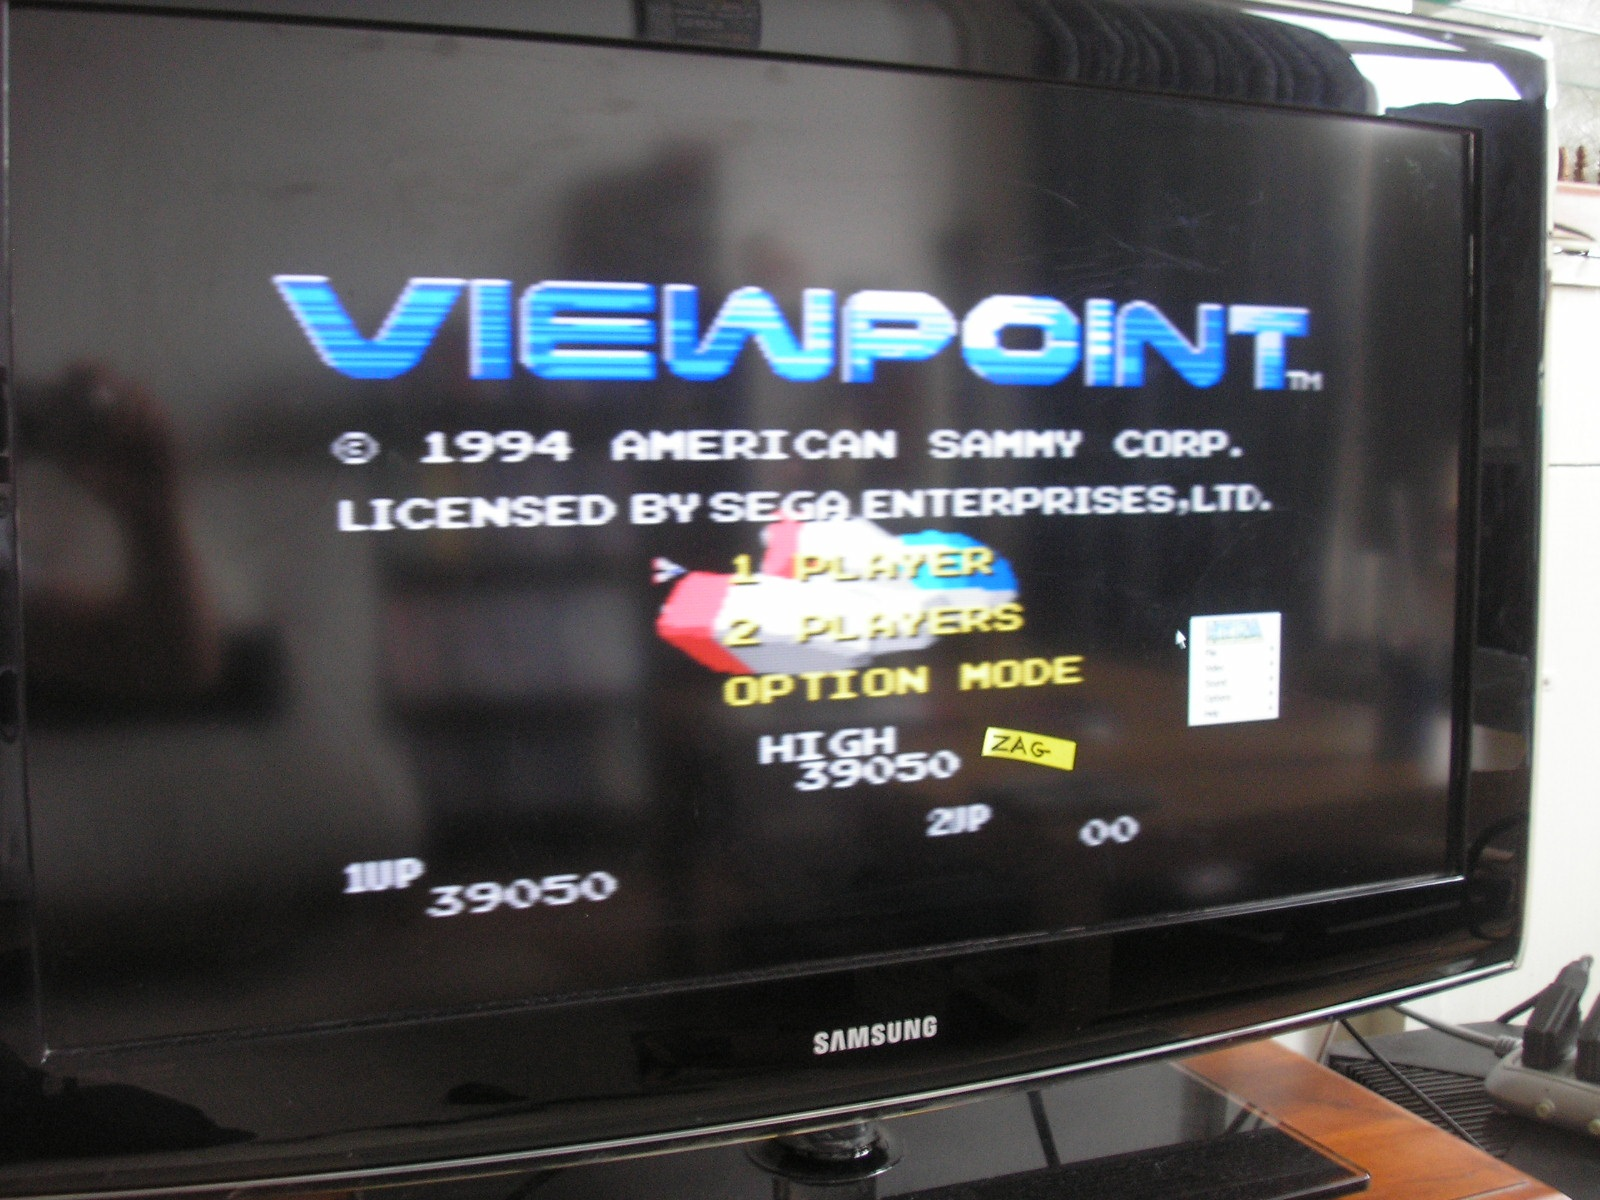 Zagrebista: Viewpoint (Sega Genesis / MegaDrive Emulated) 39,050 points on 2016-07-18 09:26:19